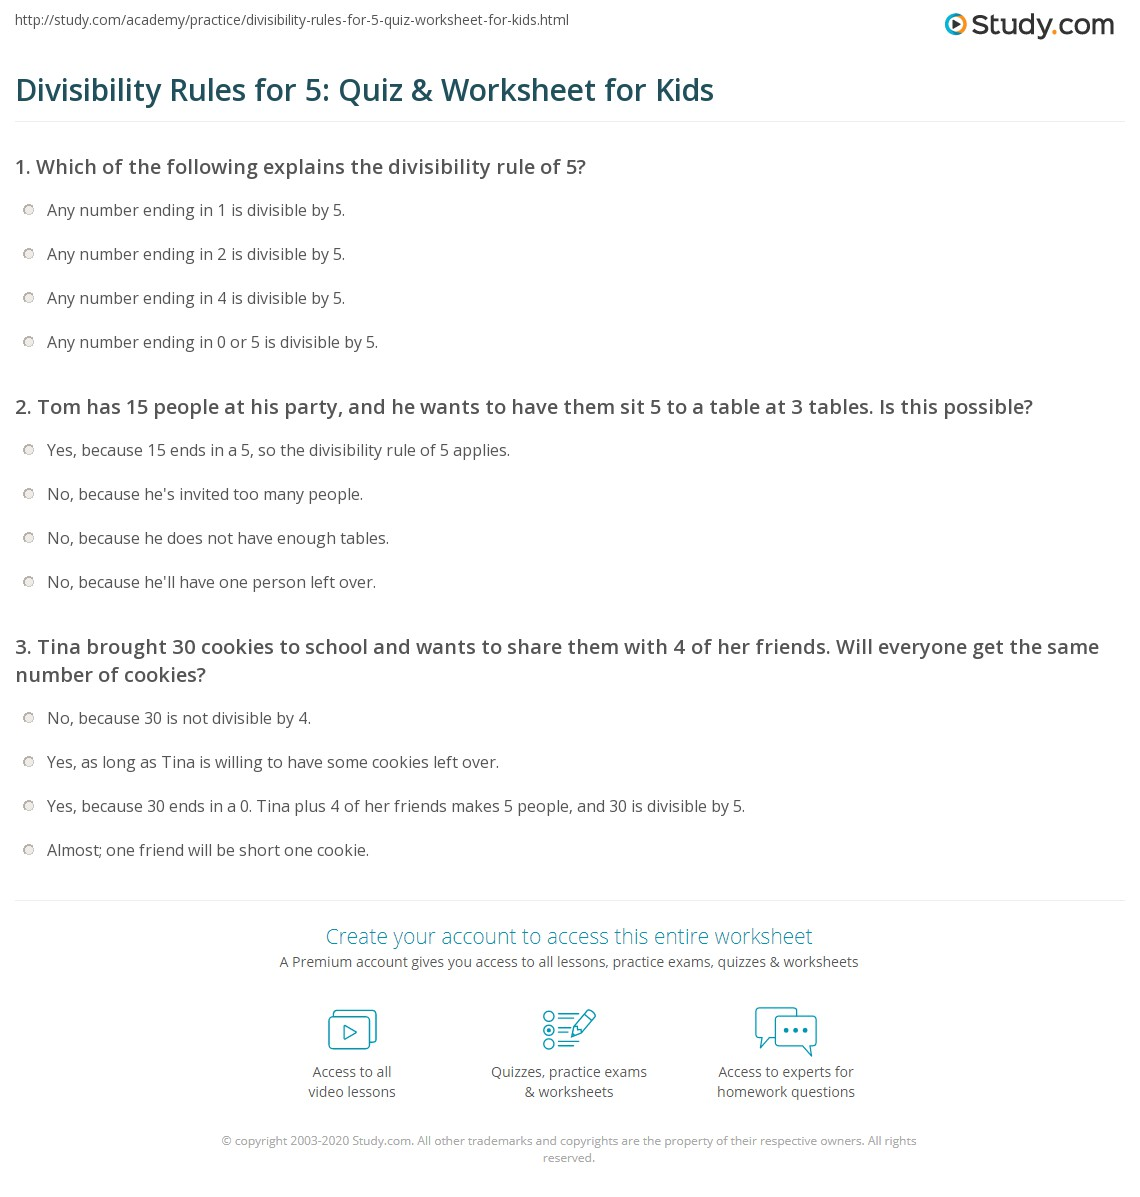 Divisibility Rules for 5 Quiz Worksheet for Kids – Divisibility Worksheets